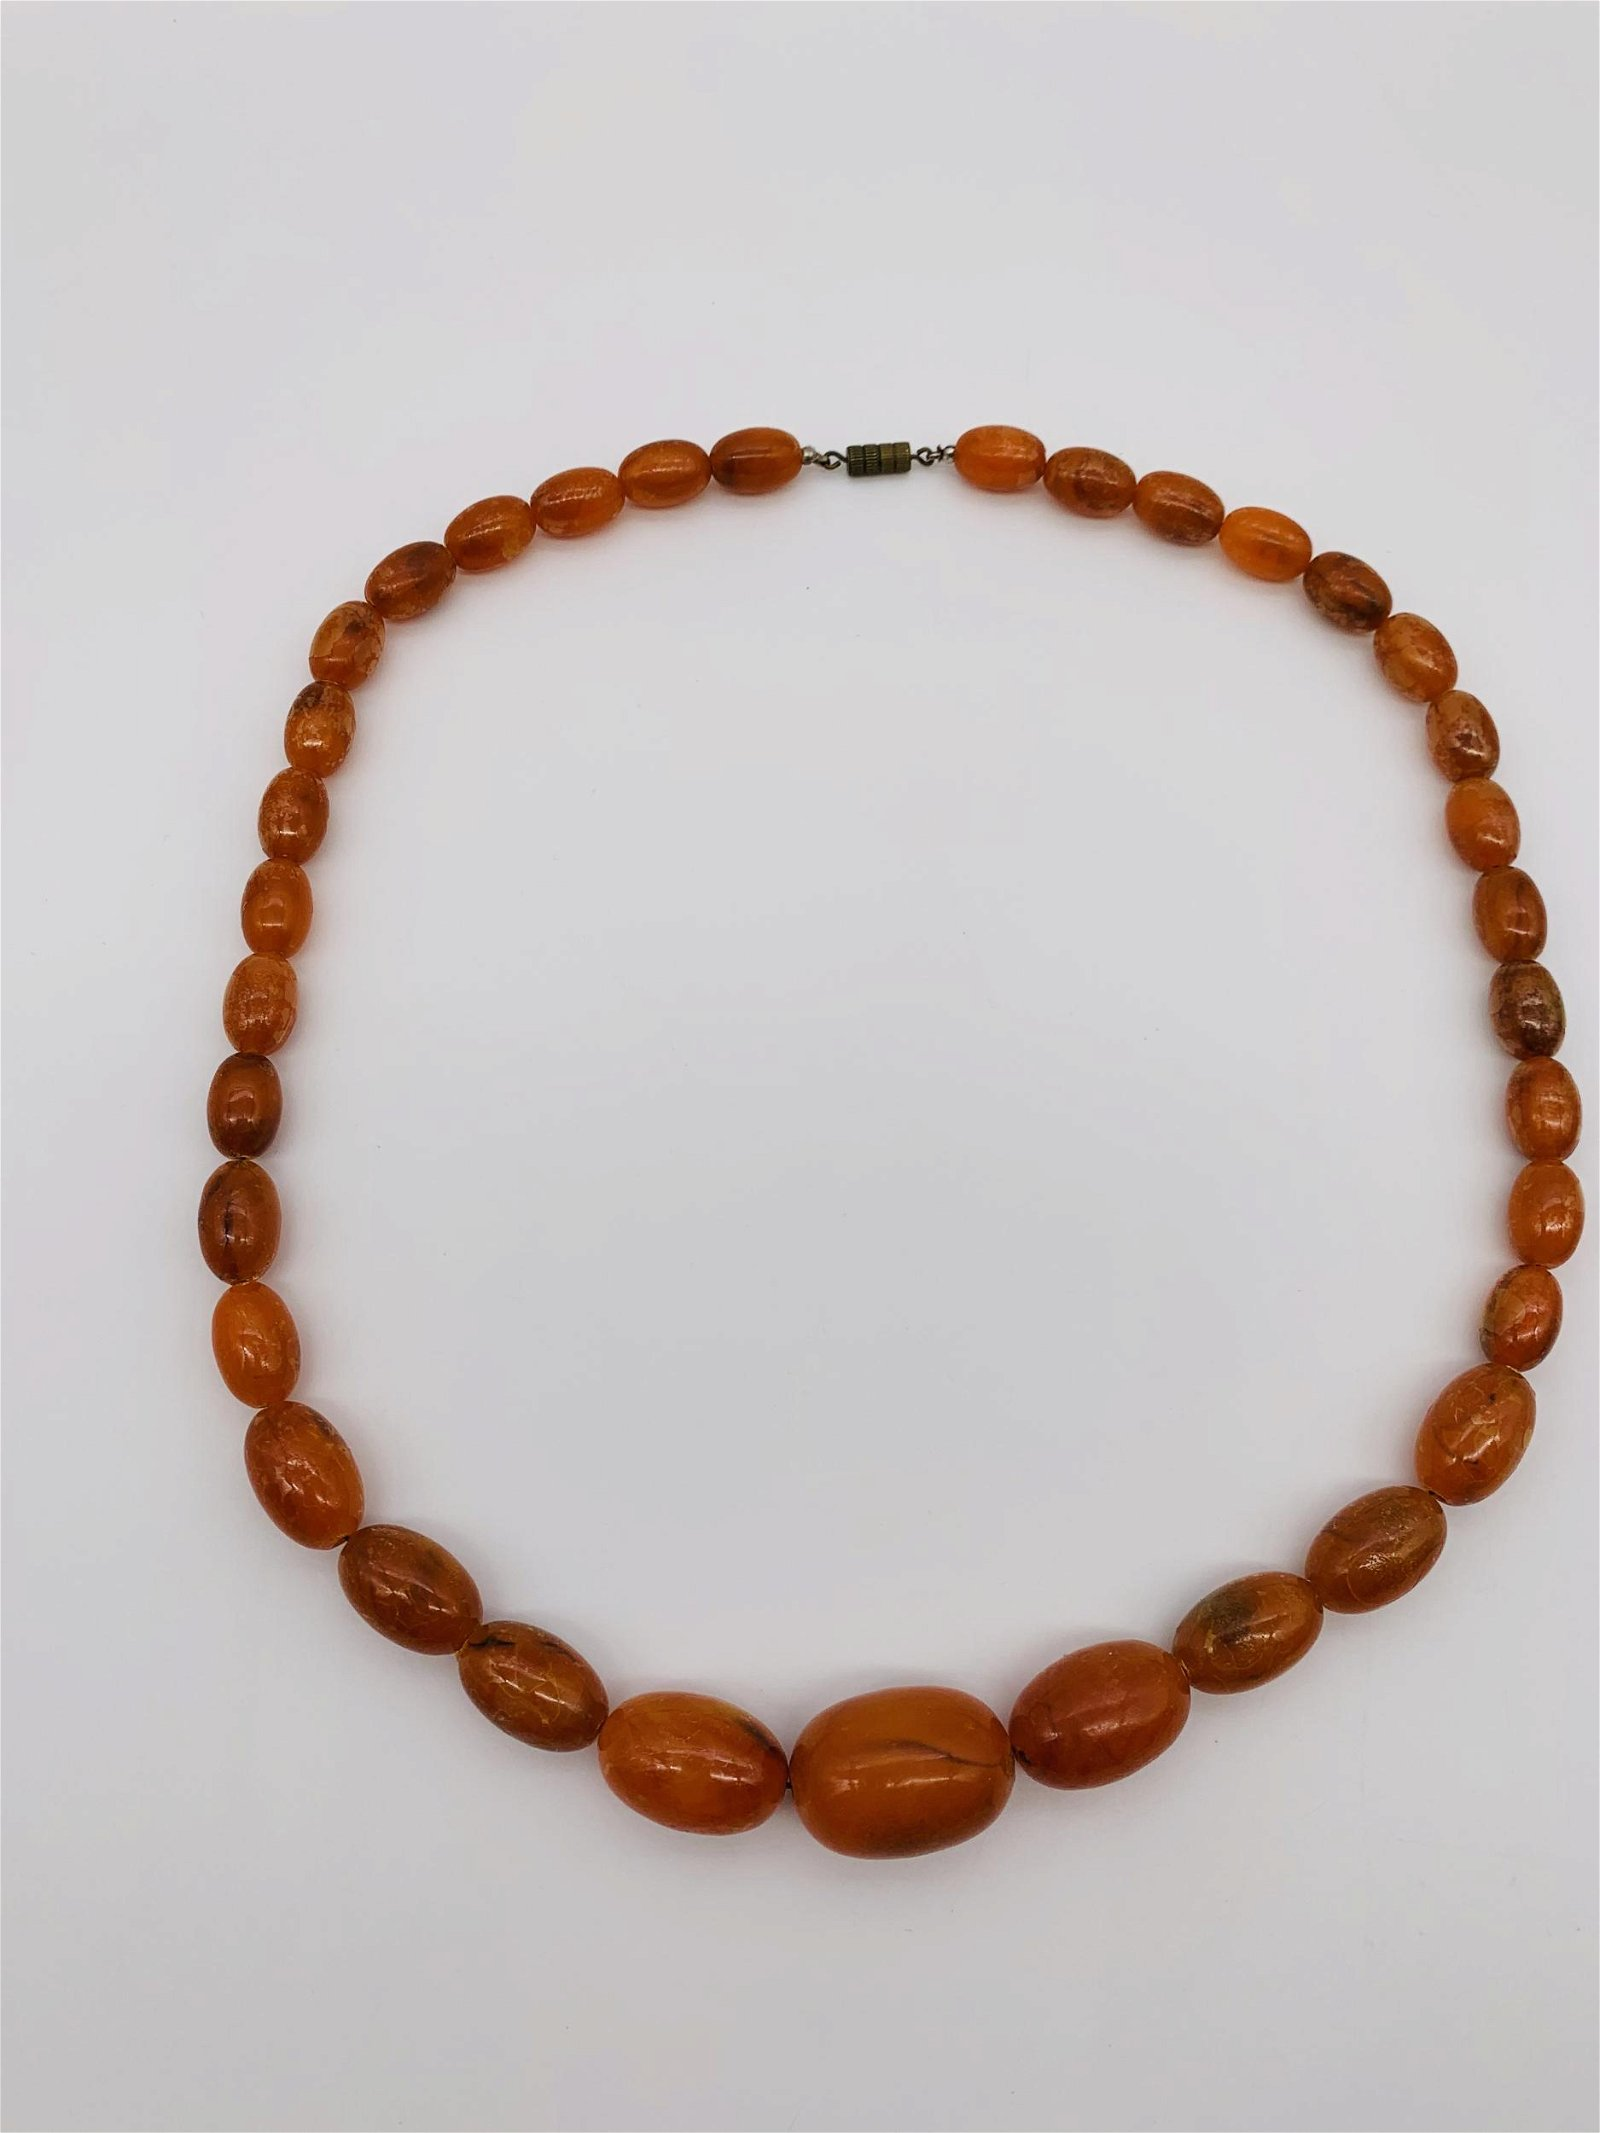 Antique Amber Beaded Necklace